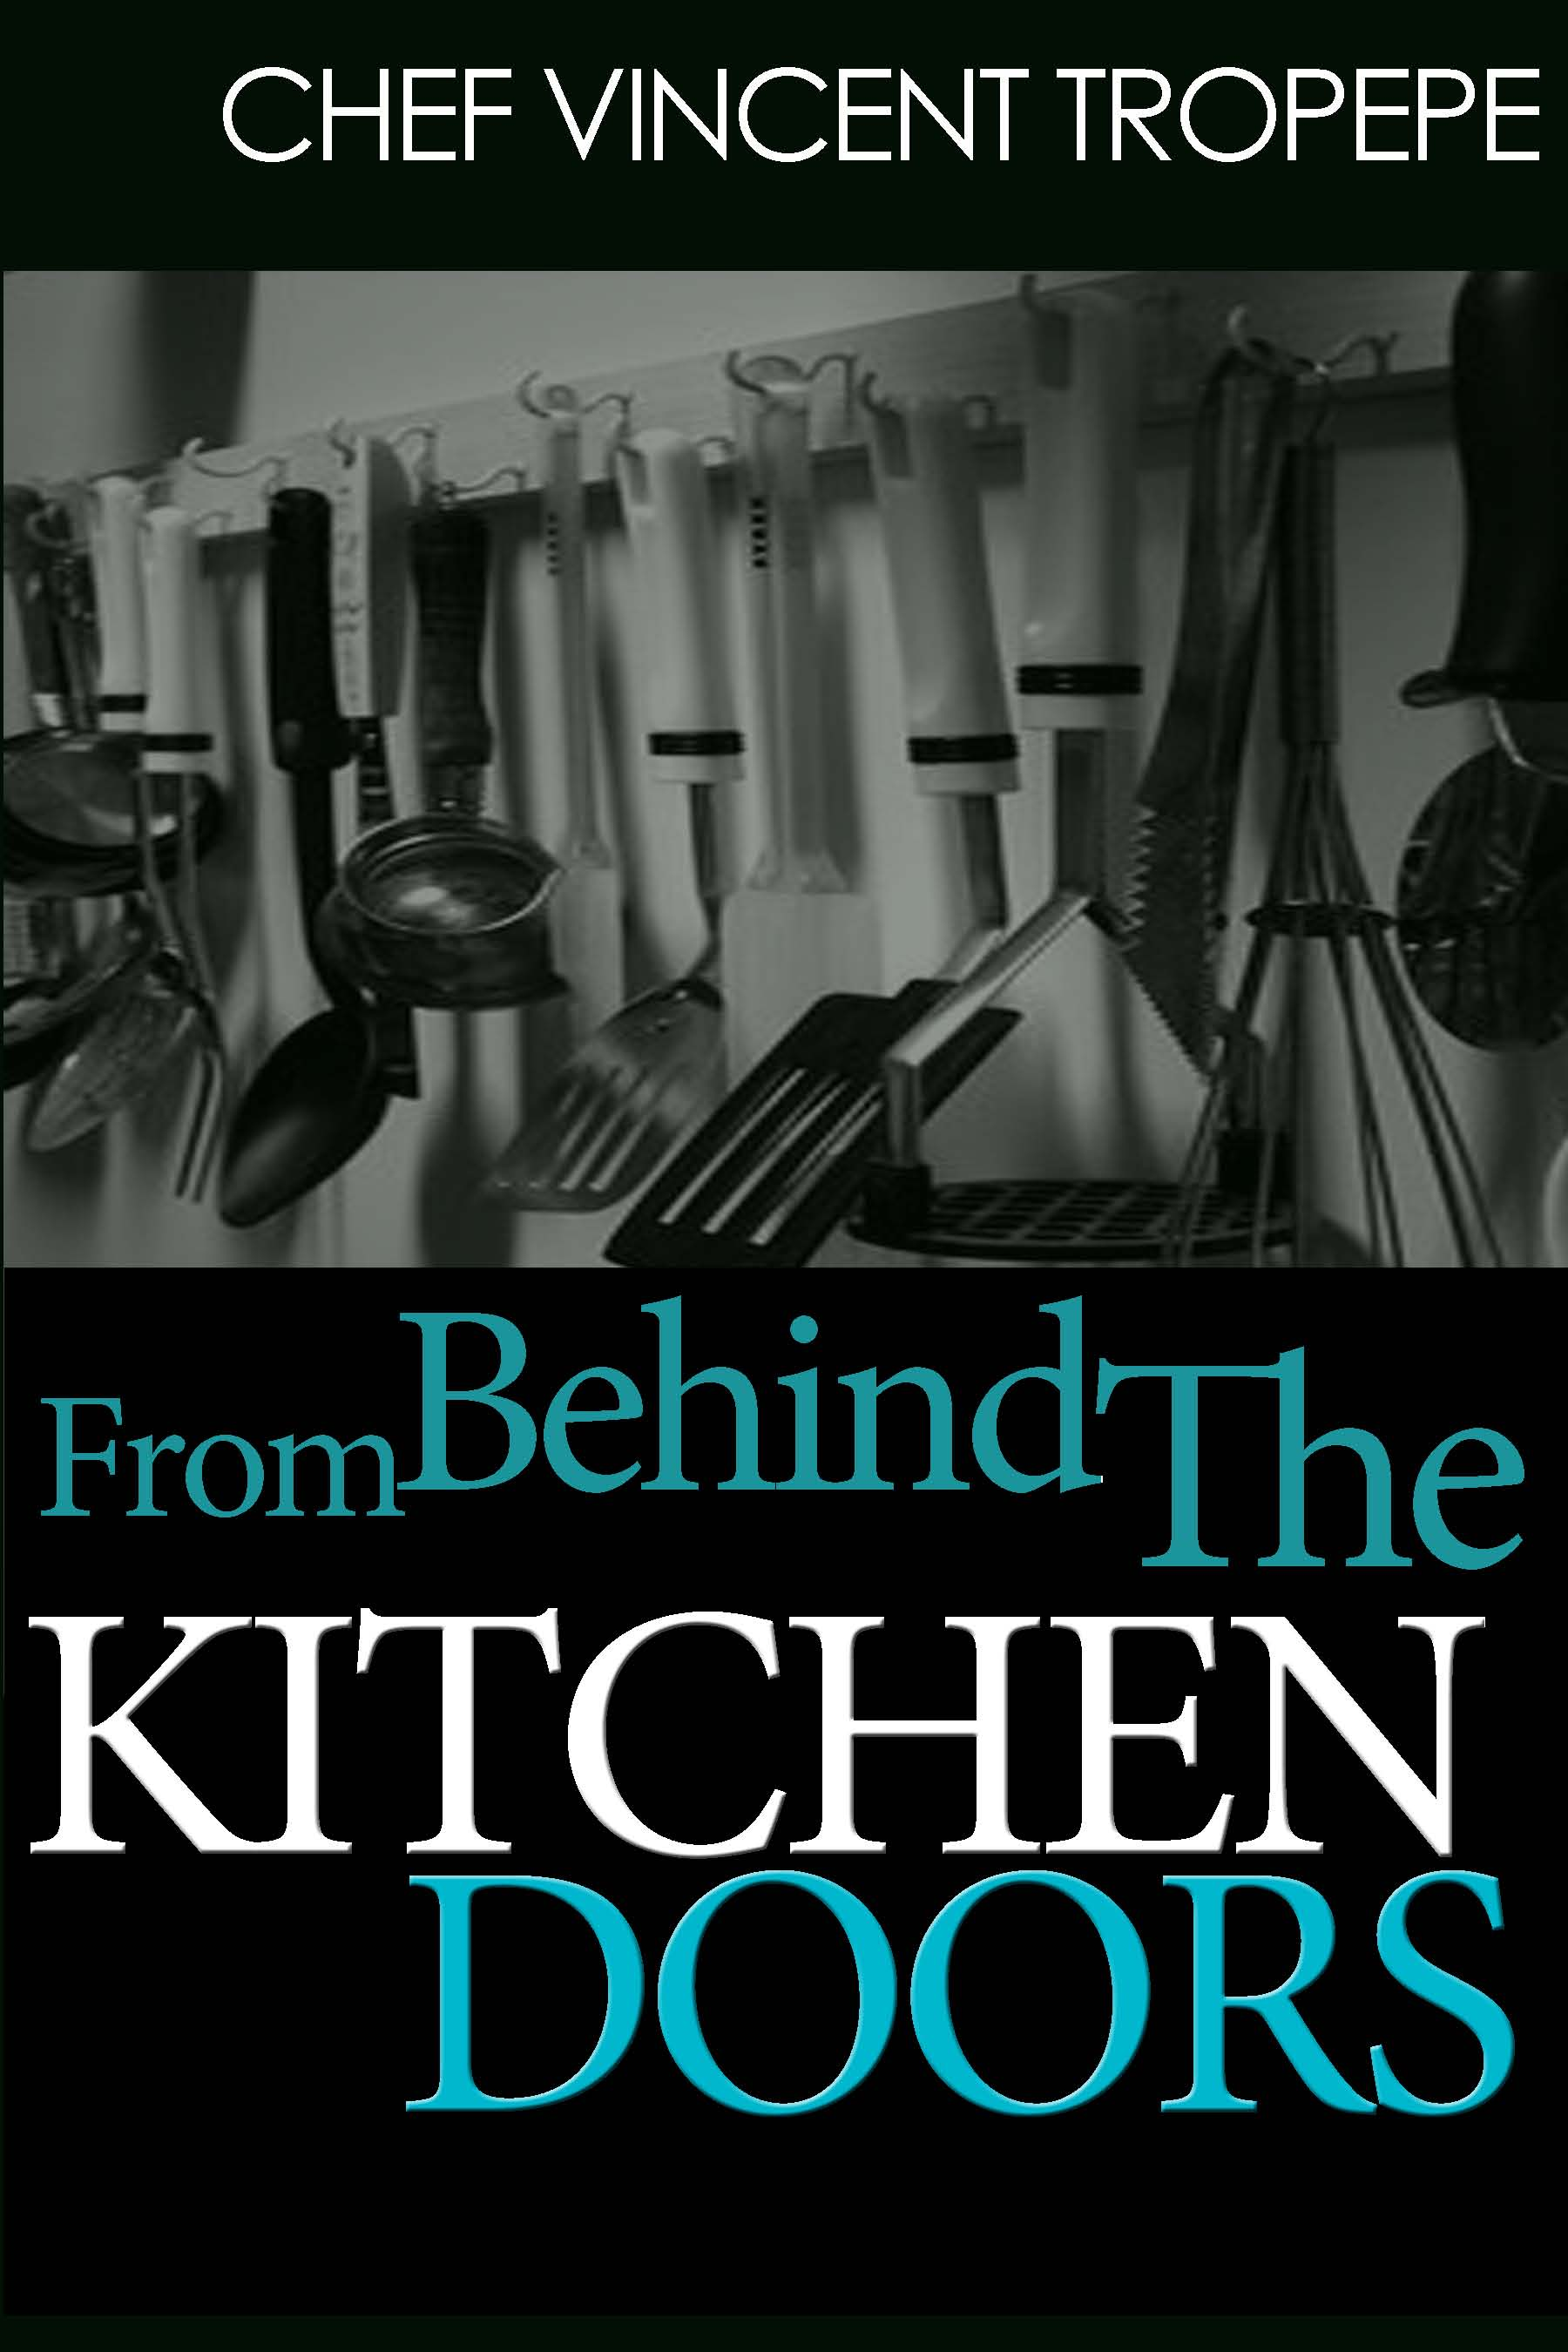 Book Launch & Biscotti Tasting: From Behind the Kitchen Doors by Vincent Tropepe